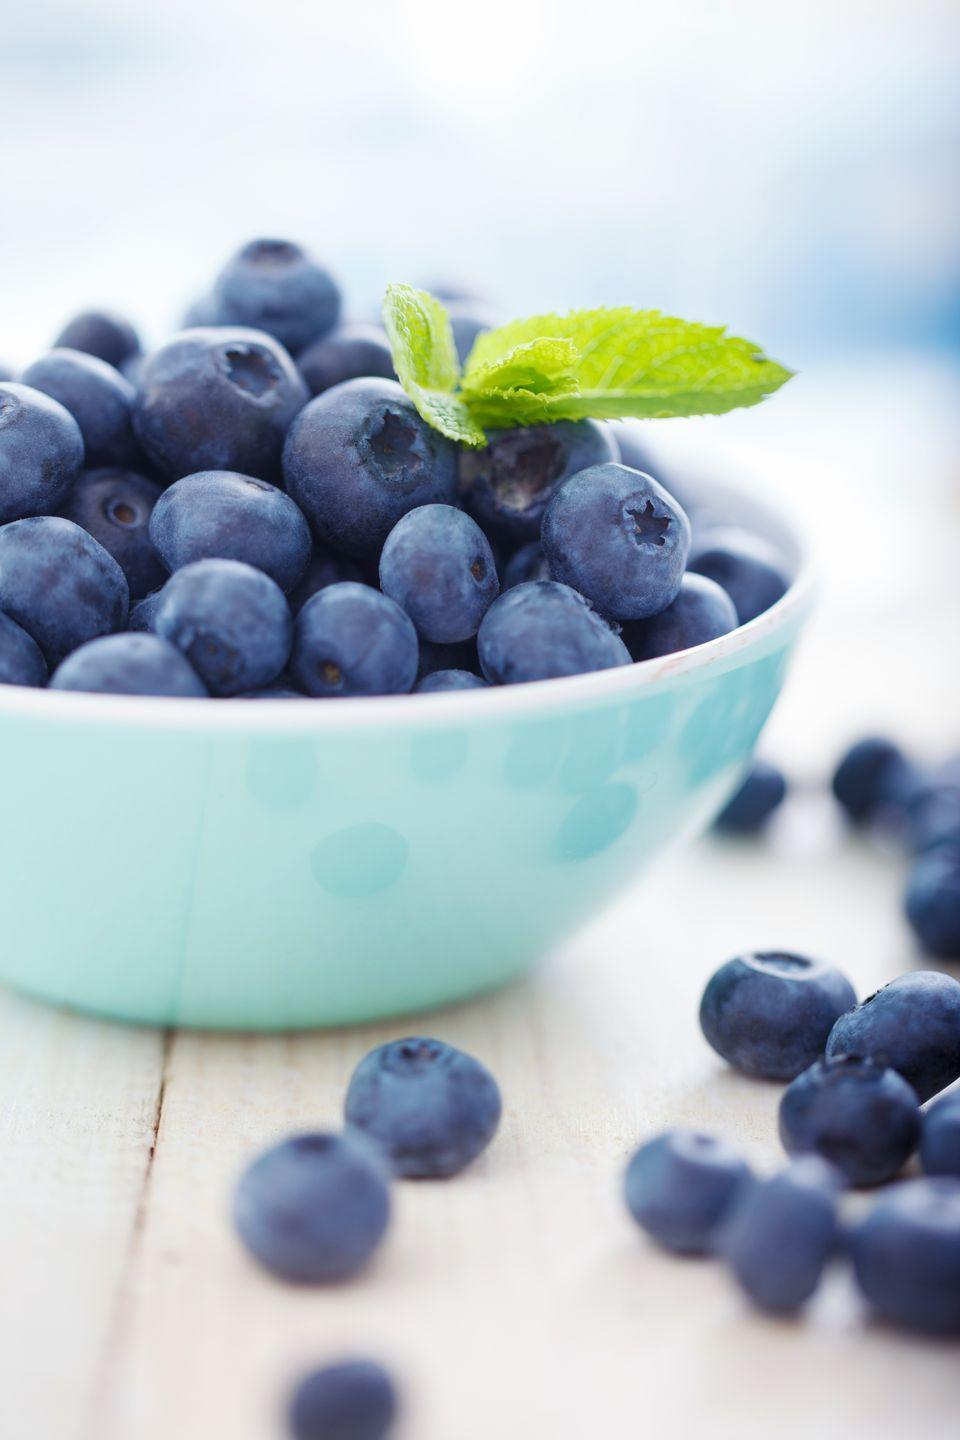 "<p>Some studies have connected <a href=""https://www.goodhousekeeping.com/health/diet-nutrition/a20916472/blueberries-nutrition/"" rel=""nofollow noopener"" target=""_blank"" data-ylk=""slk:eating blueberries"" class=""link rapid-noclick-resp"">eating blueberries</a> regularly with decreased blood pressure. That's thanks to their circulation-boosting effect on blood vessels (otherwise known as ""vasodilation""), which slows the rate of atherosclerosis. </p>"